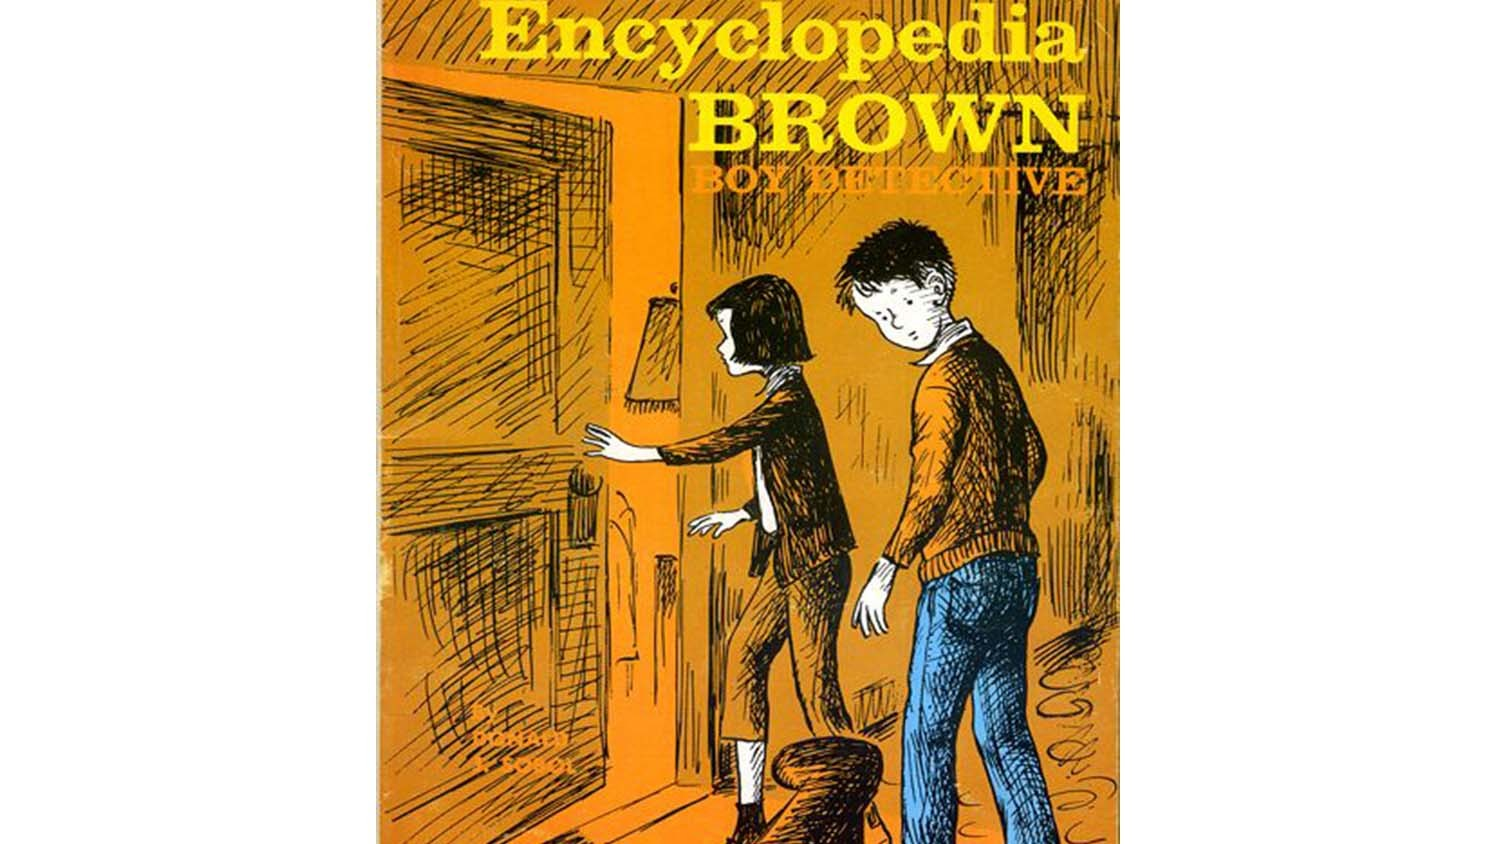 Encyclopedia Brown by Donald J. Sobol